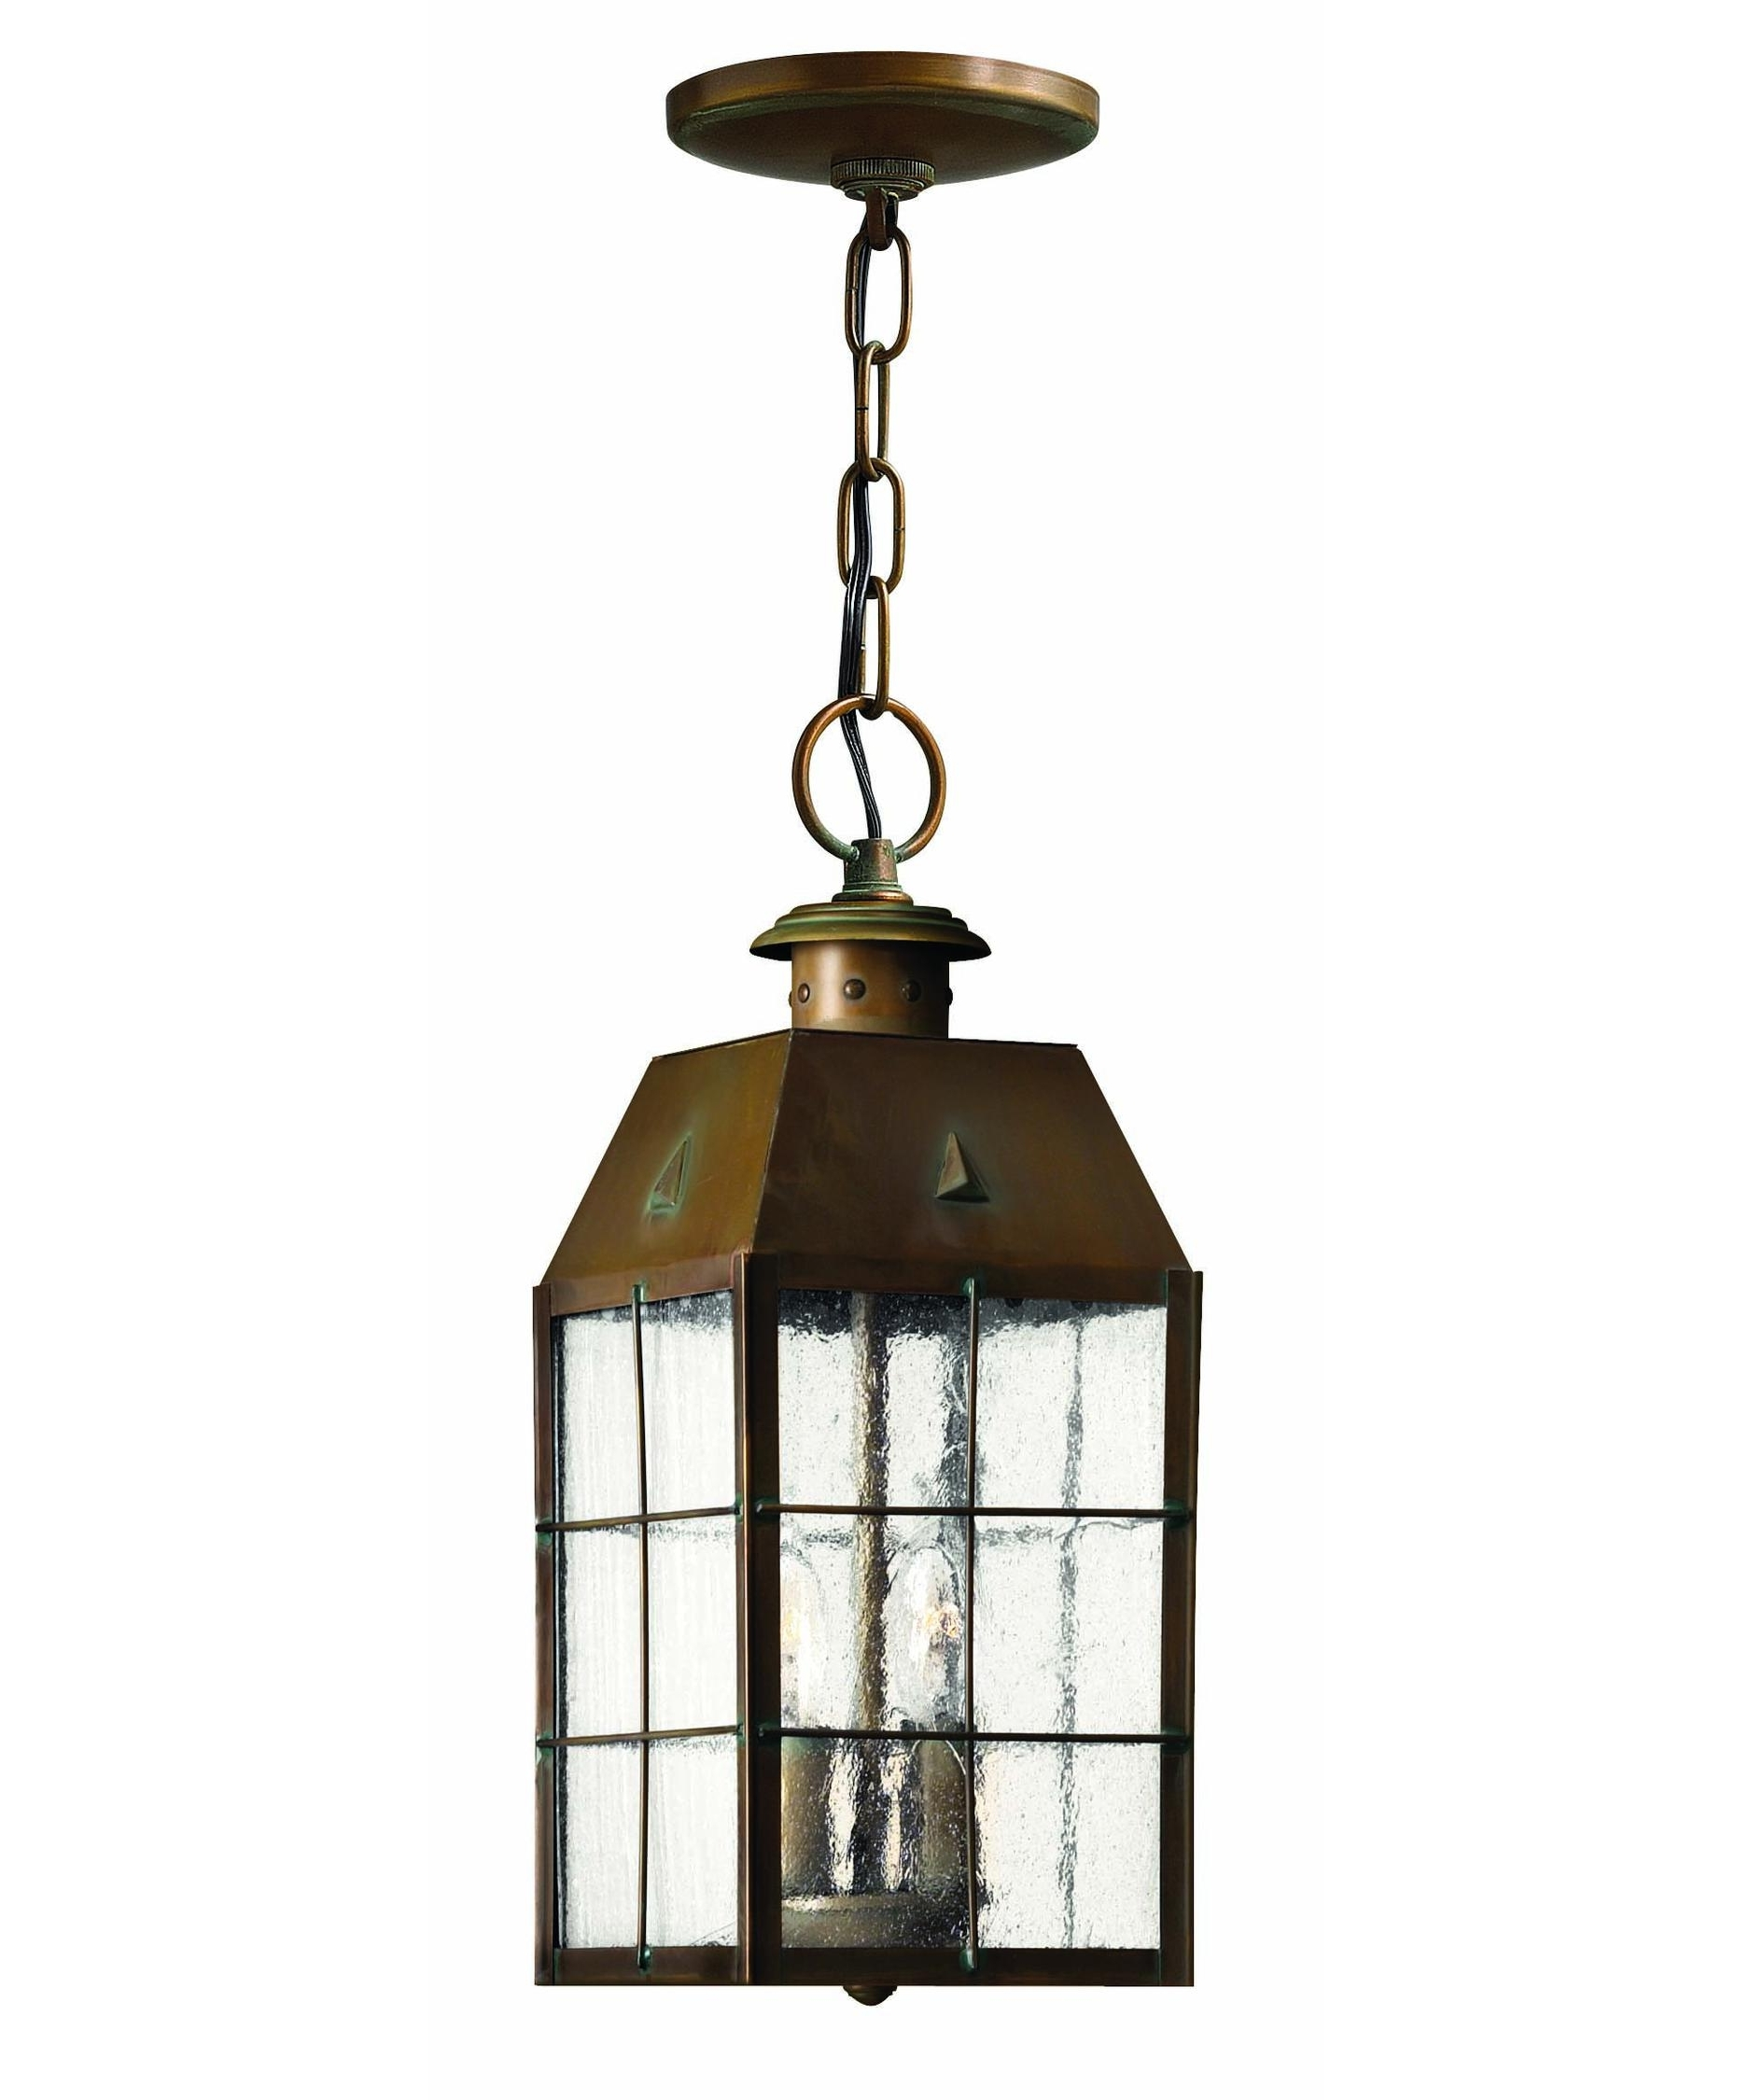 Hinkley Lighting 2372 Nantucket 6 Inch Wide 2 Light Outdoor Hanging Intended For Most Up To Date Outdoor Hanging Porch Lights (View 2 of 20)